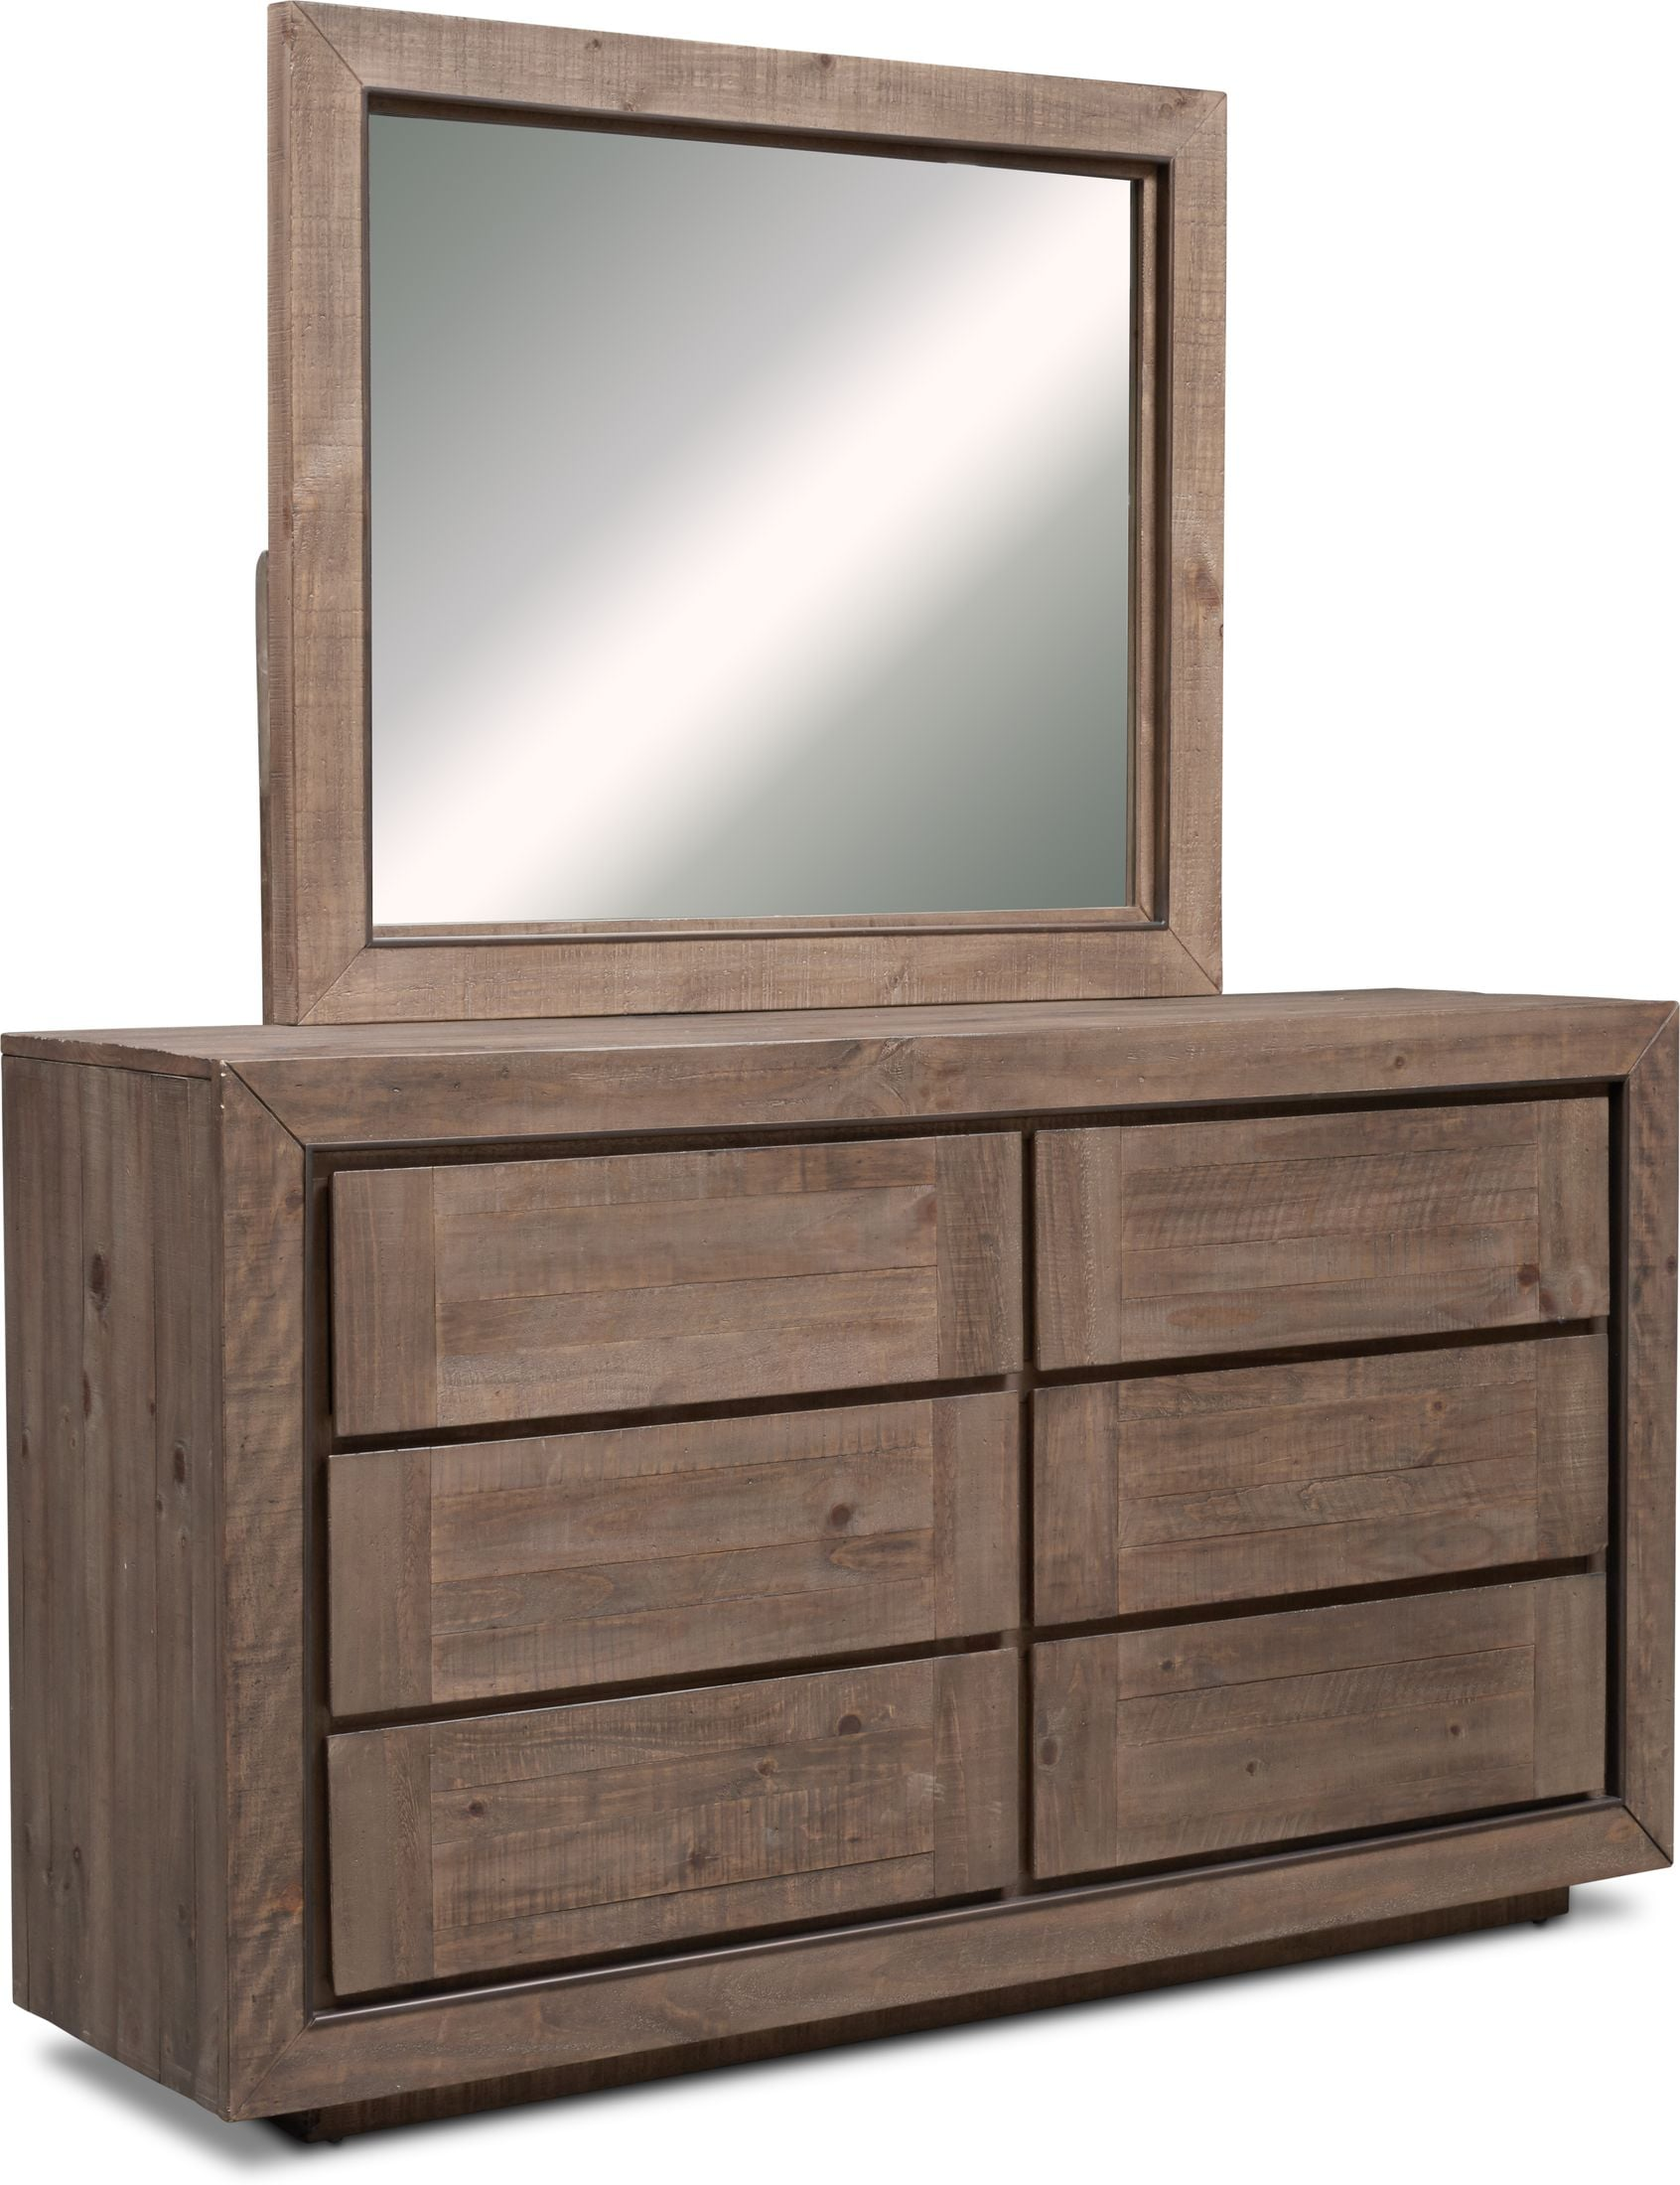 Bedroom Furniture - Henry Dresser and Mirror